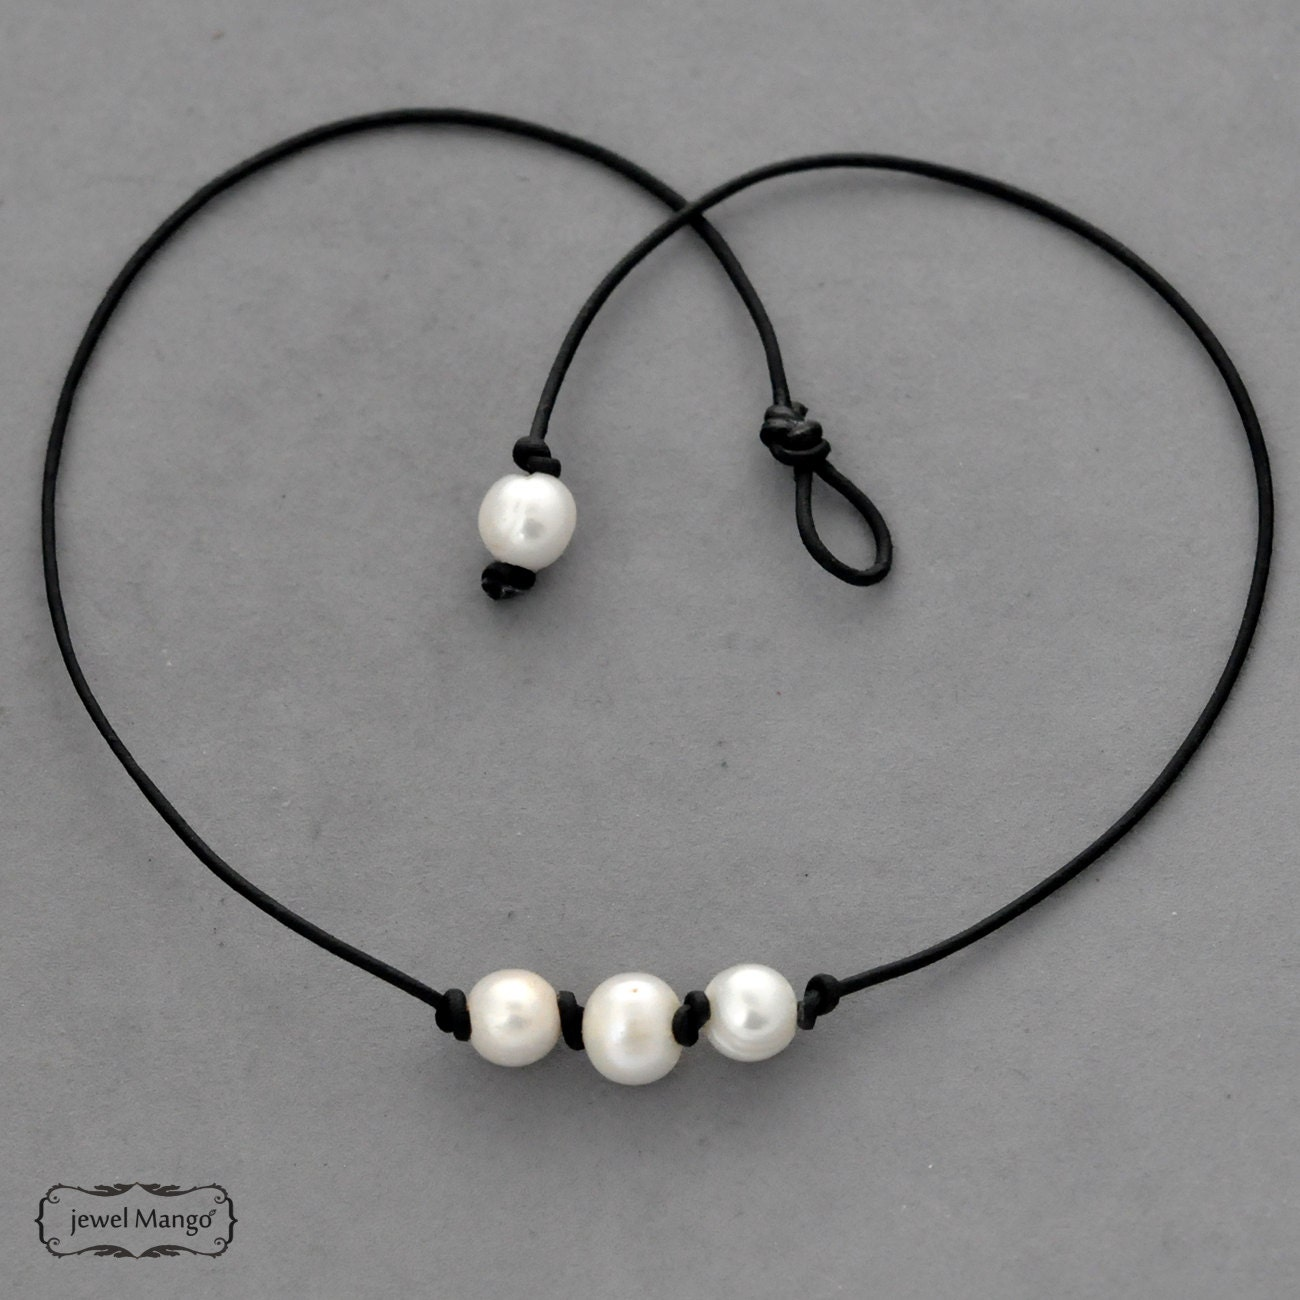 gold and product onyx gf lyns fwp freshwater necklace info pearl ne black bo jewelry